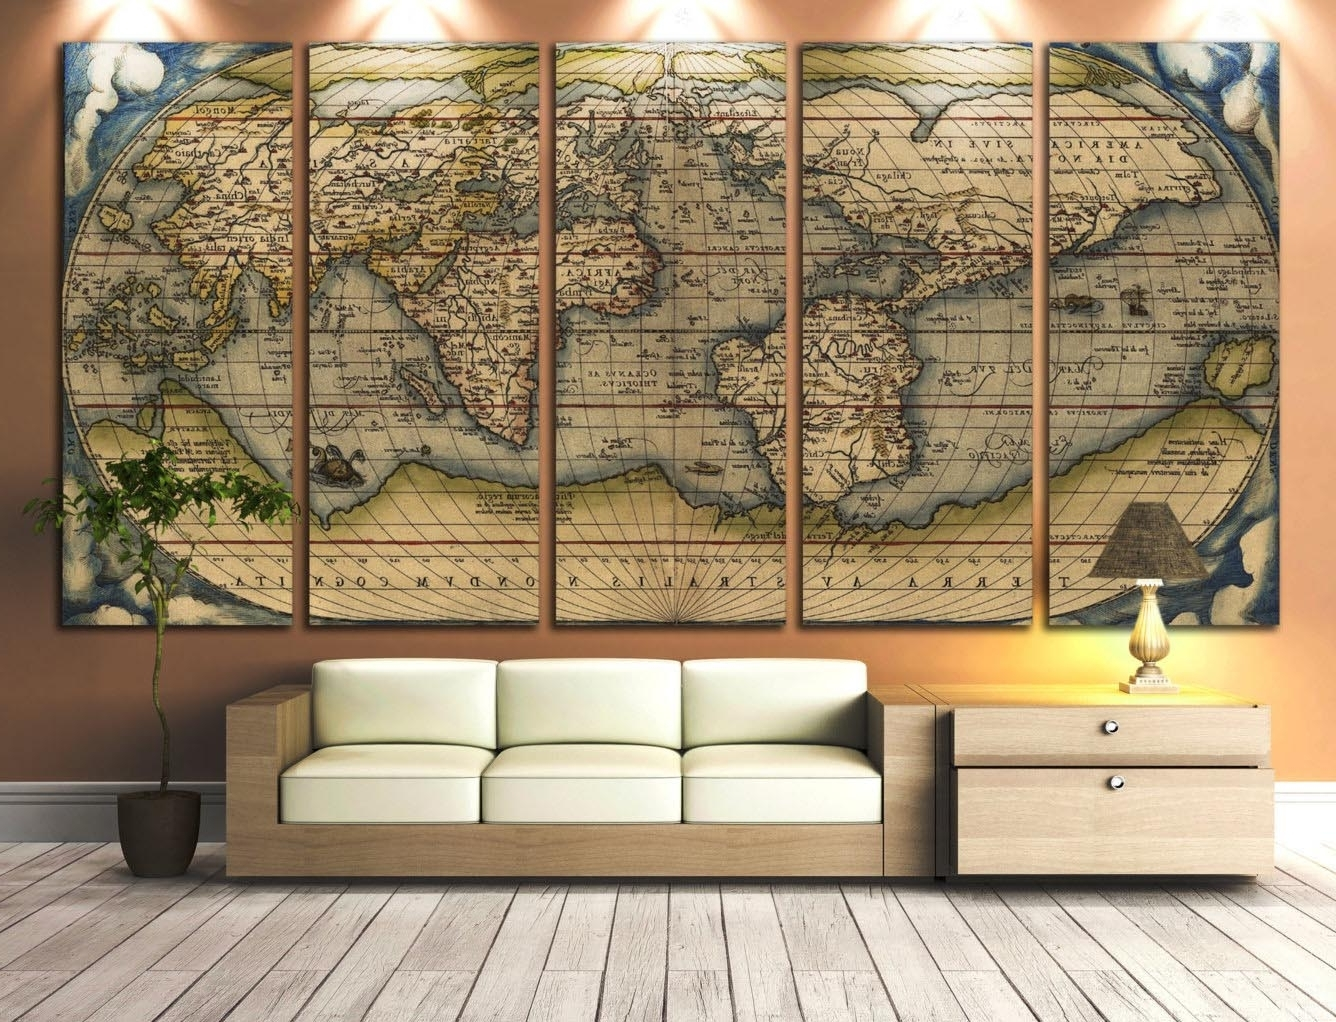 Tapestry Pertaining To Recent Old World Map Wall Art (View 11 of 15)